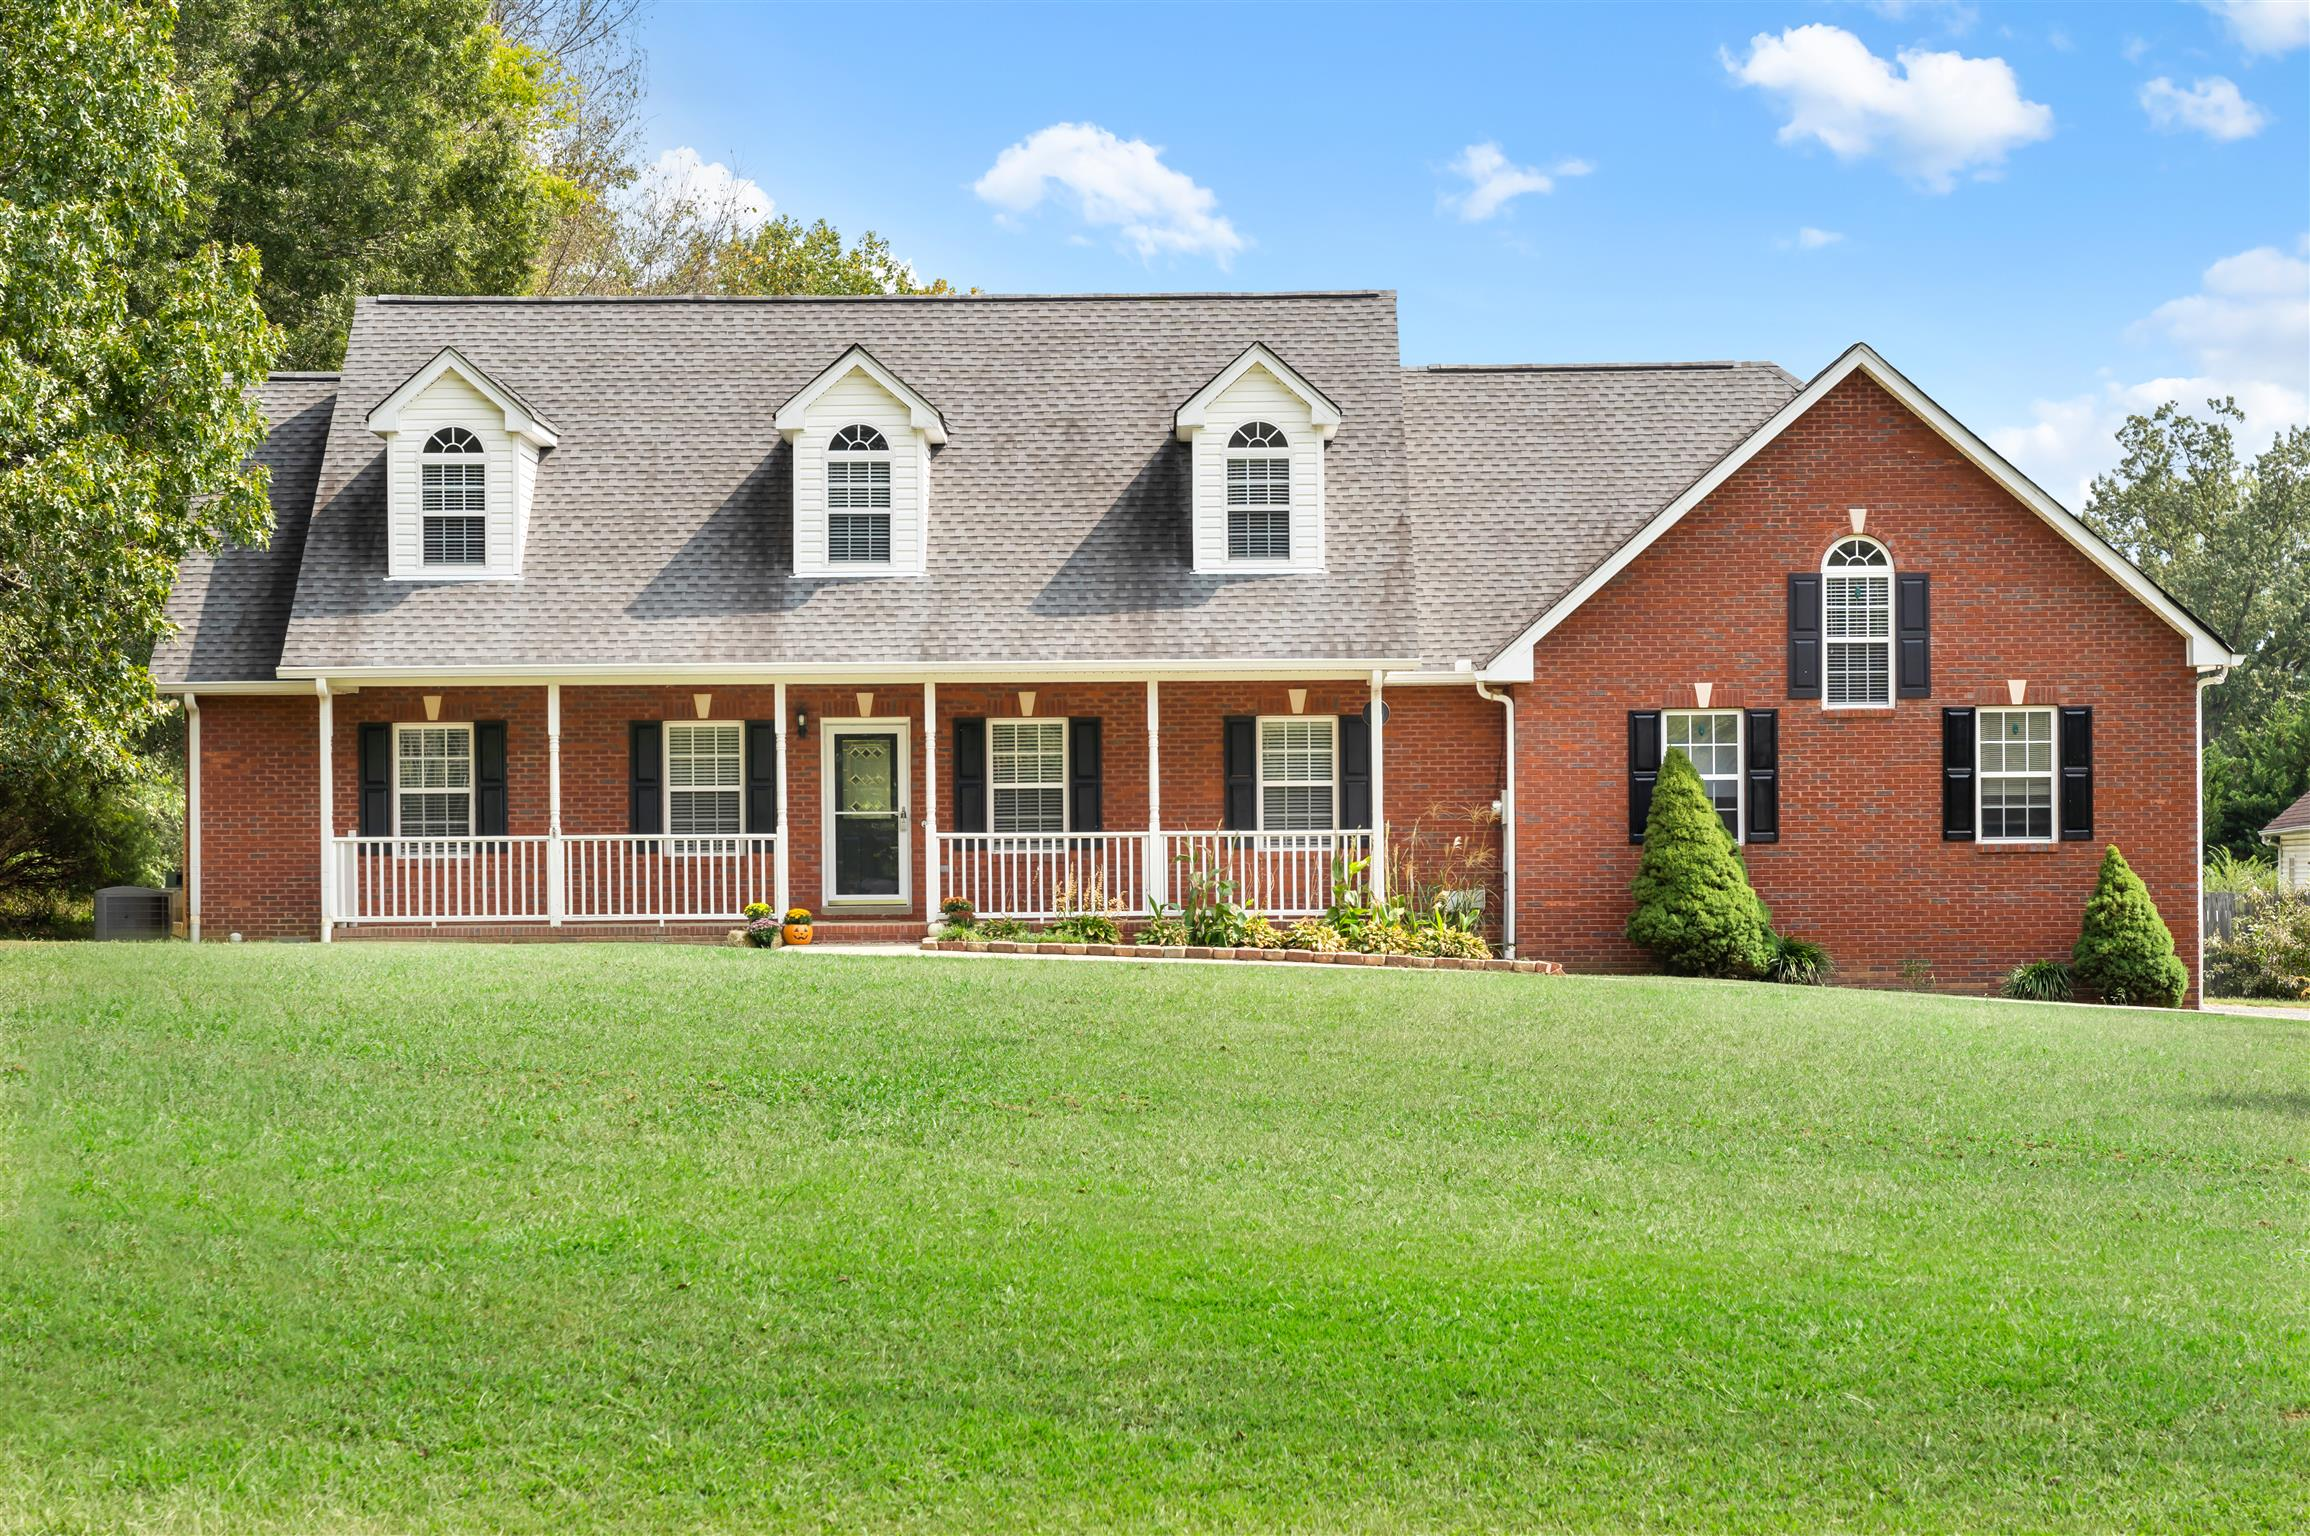 1019 Autumn Woods Dr, Pleasant View, TN 37146 - Pleasant View, TN real estate listing